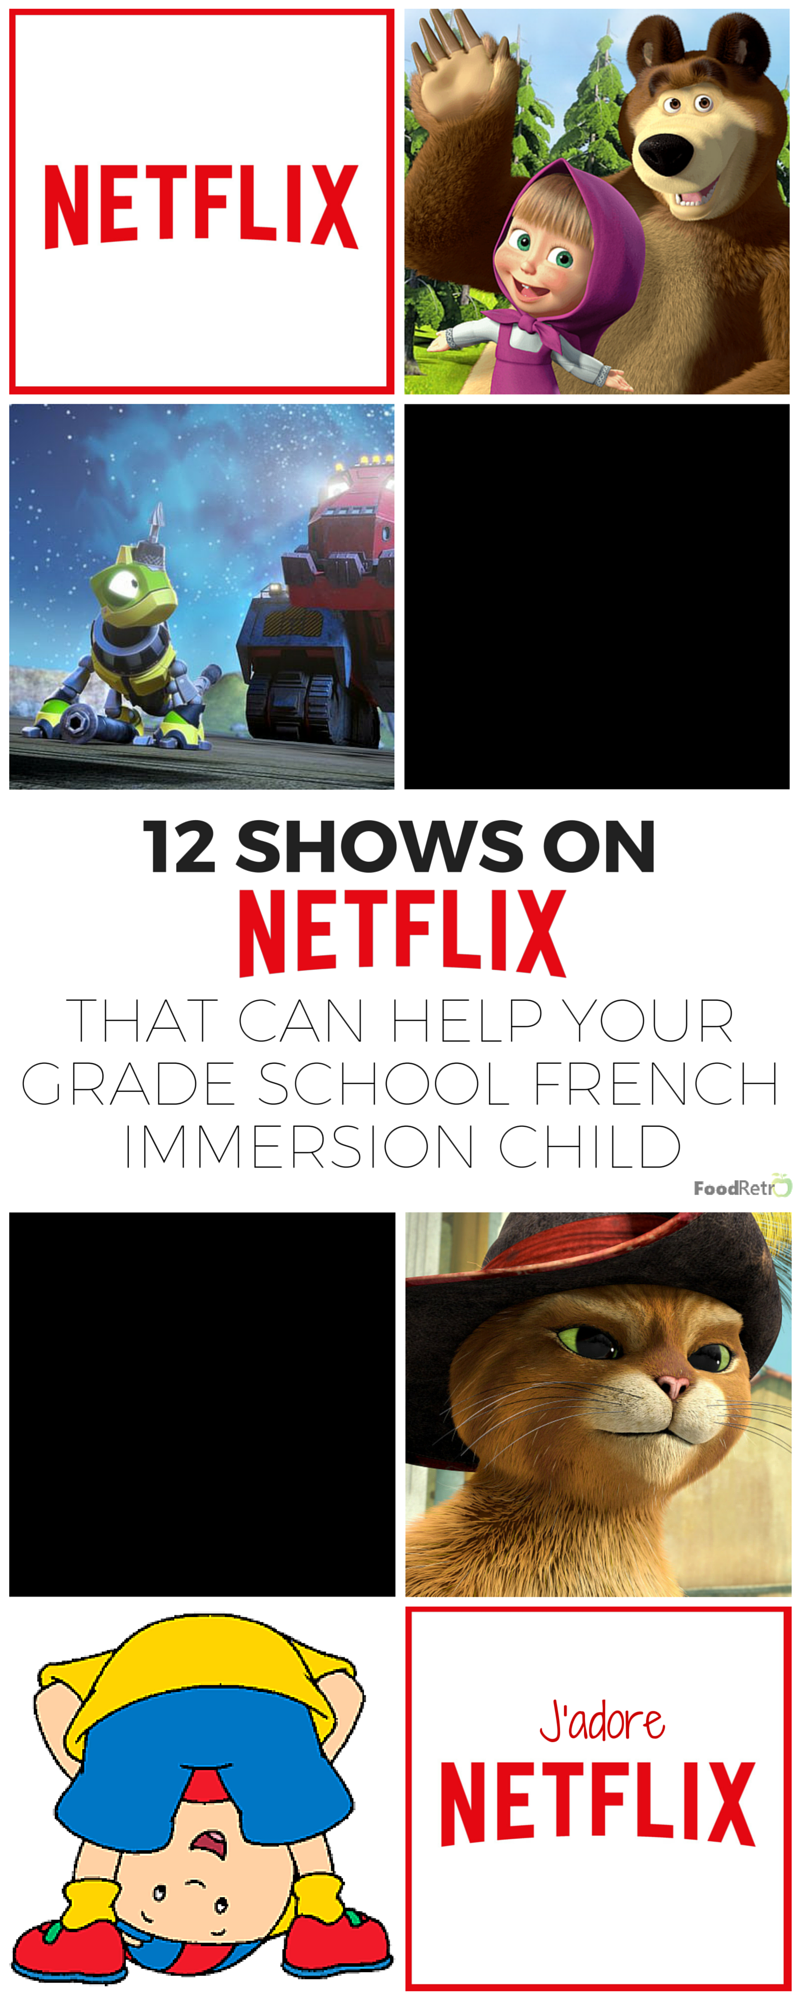 12 Shows on Netflix That Can Help Your Grade School French Immersion Child (2)